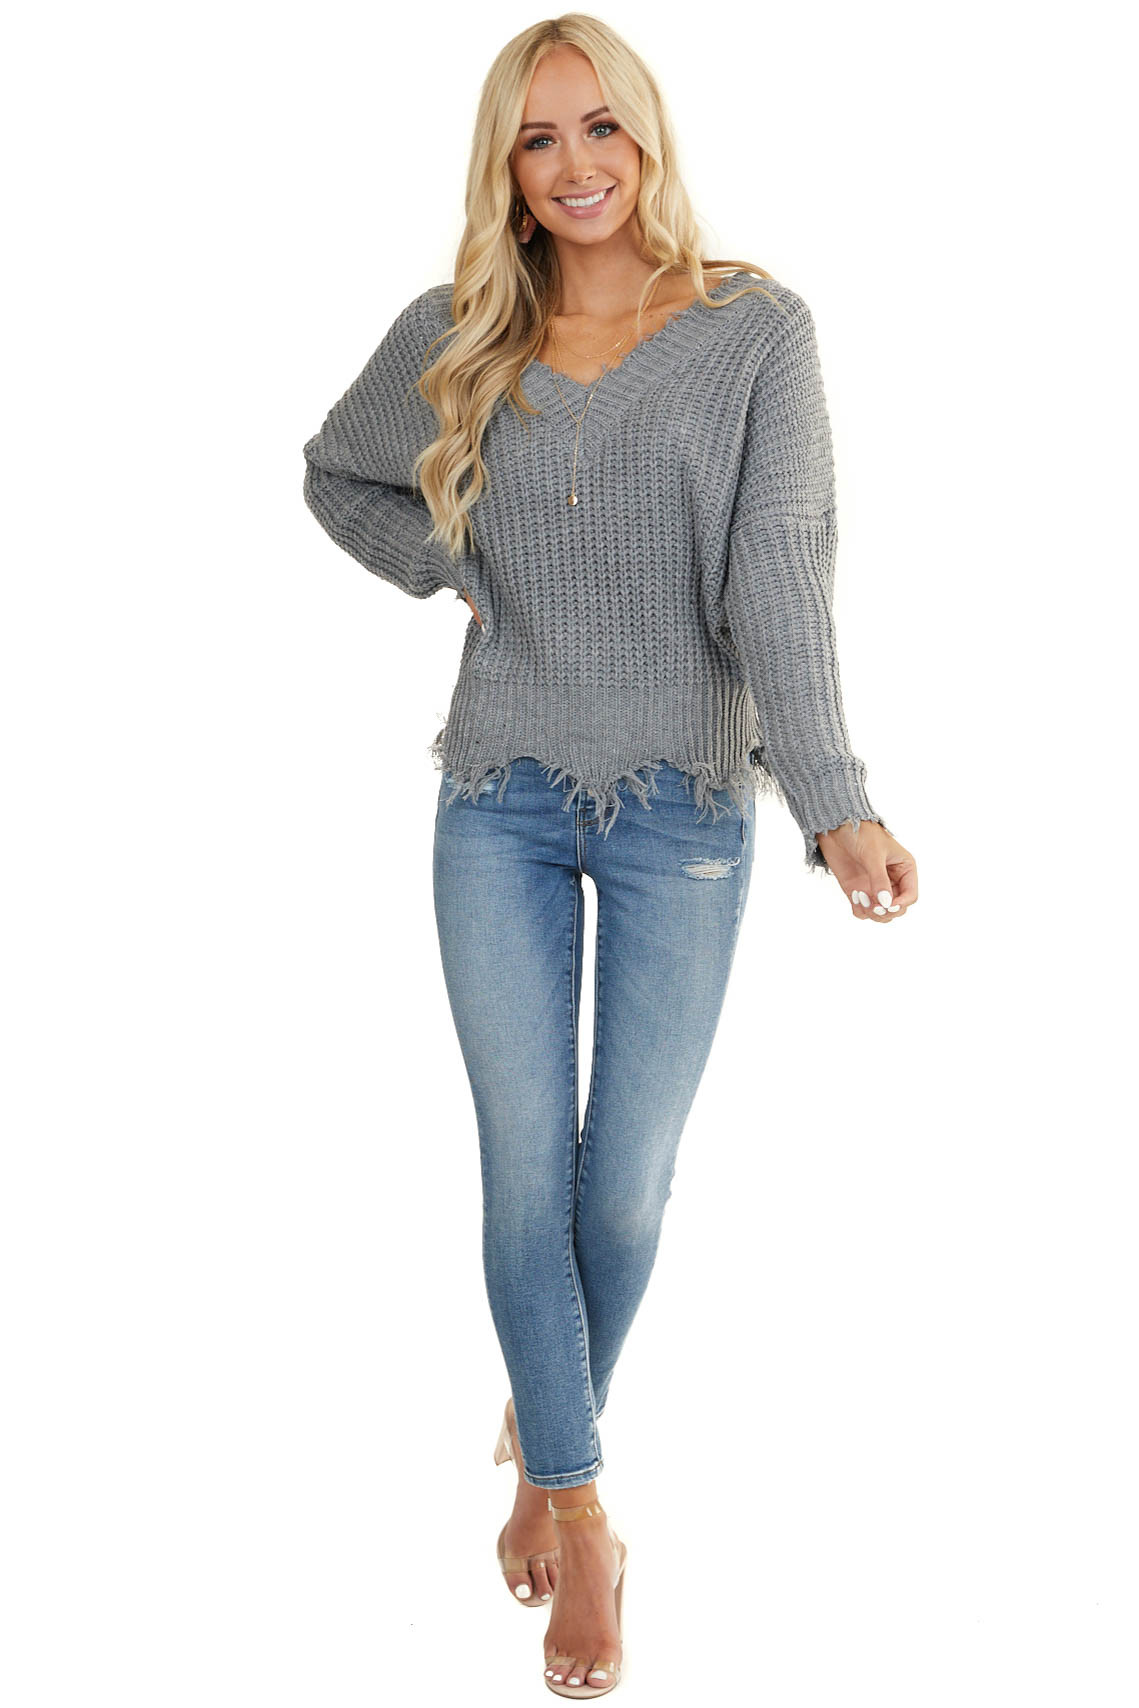 Stone Grey V Neck Sweater with Distressed Detail